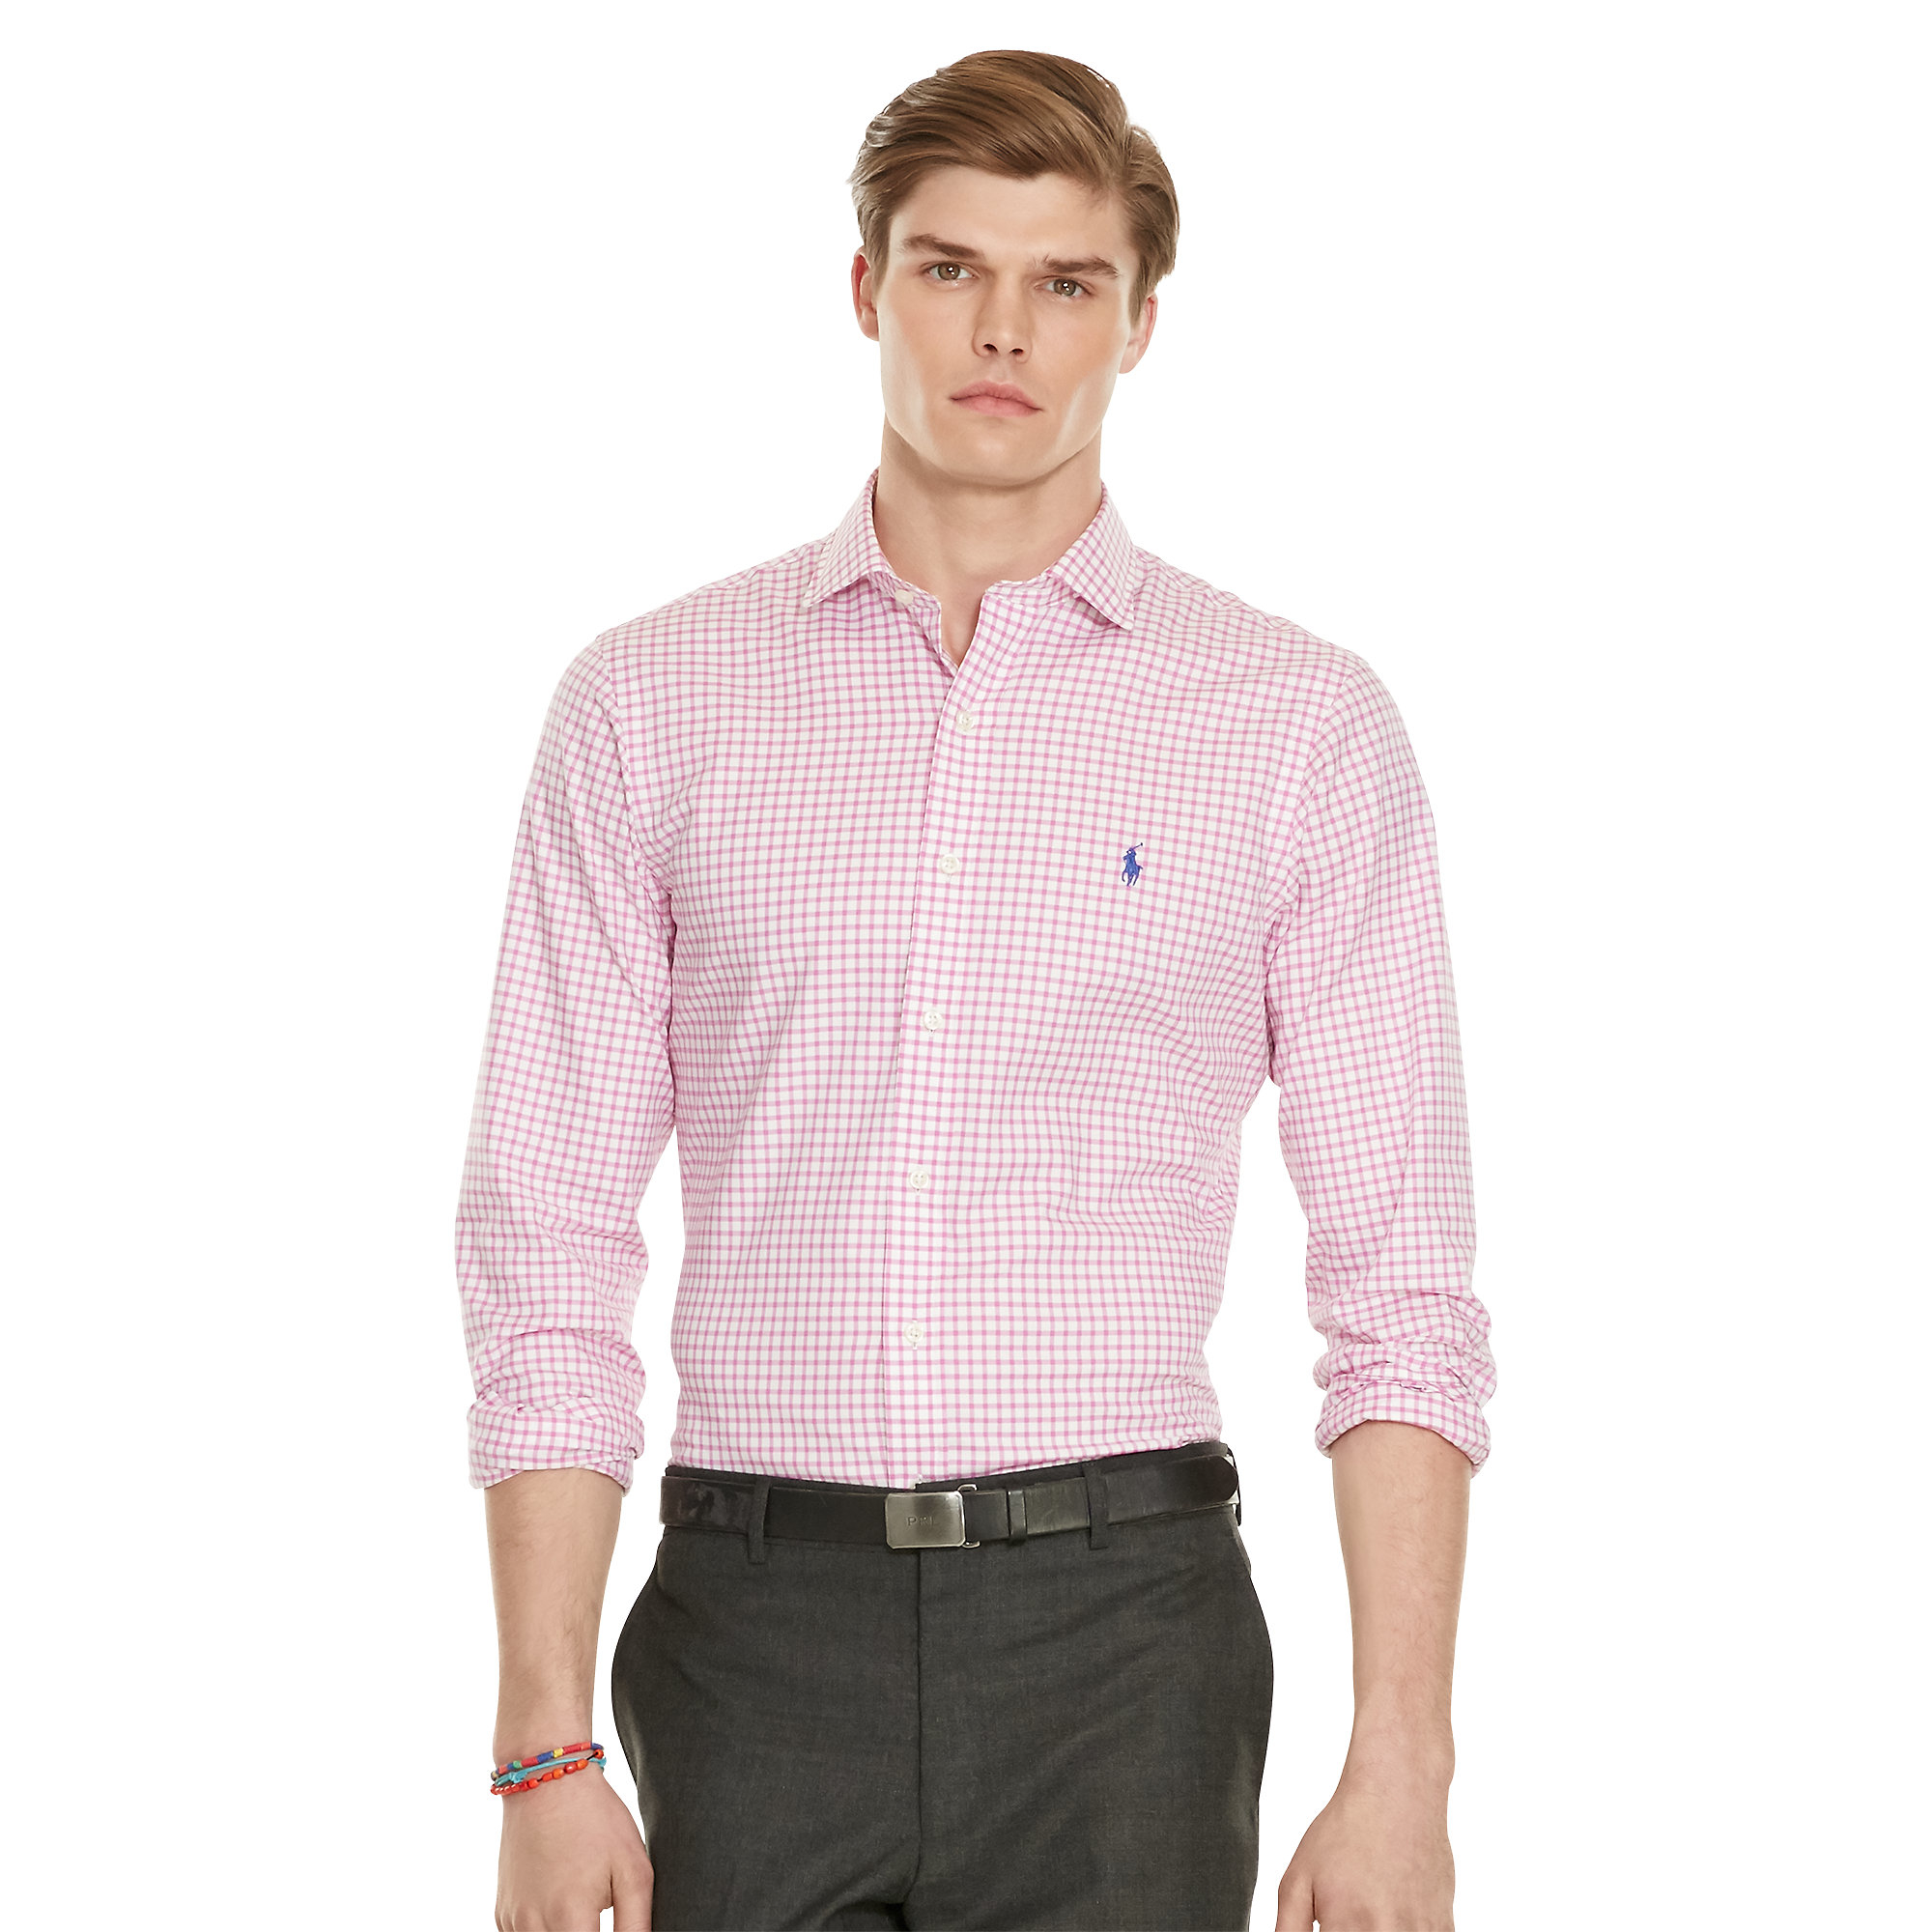 $99 RYAN SEACREST Men SLIM-FIT PINK LONG-SLEEVE BUTTON DRESS SHIRT SIZE 18 34/35 See more like this Lauren Ralph Lauren Dress Shirt Mens Slim Fit .